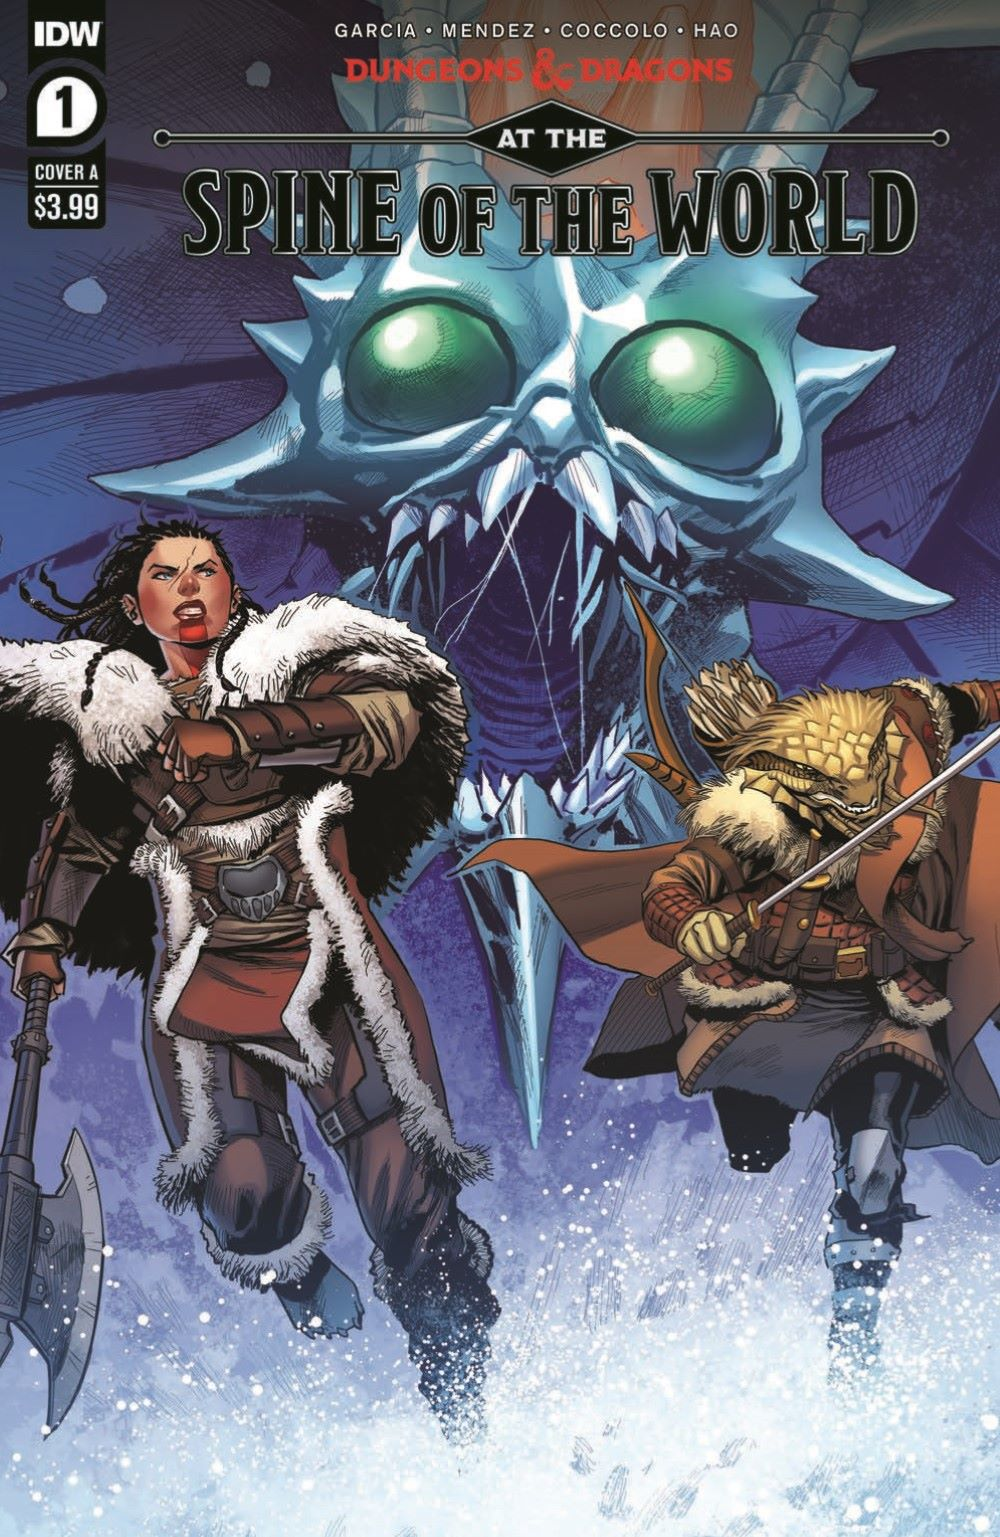 DD_ATSOTW01-pr-1 ComicList Previews: DUNGEONS AND DRAGONS AT THE SPINE OF THE WORLD #3 (OF 4)